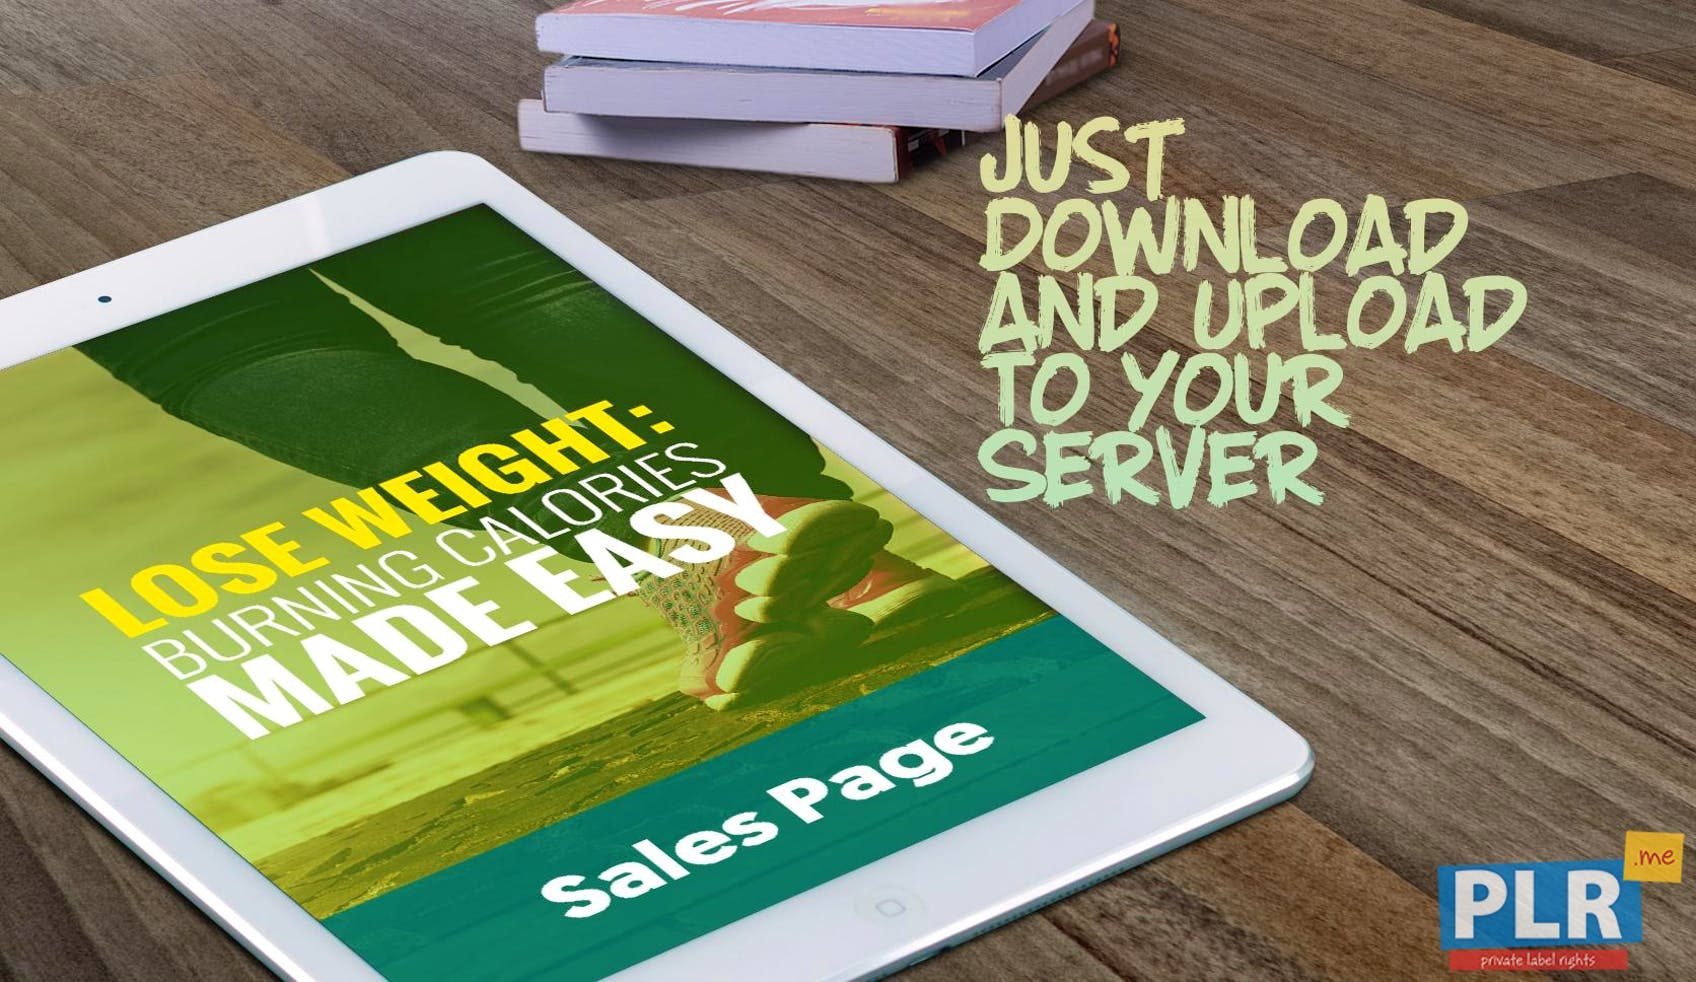 Lose Weight: Burning Calories Made Easy - Sales Page